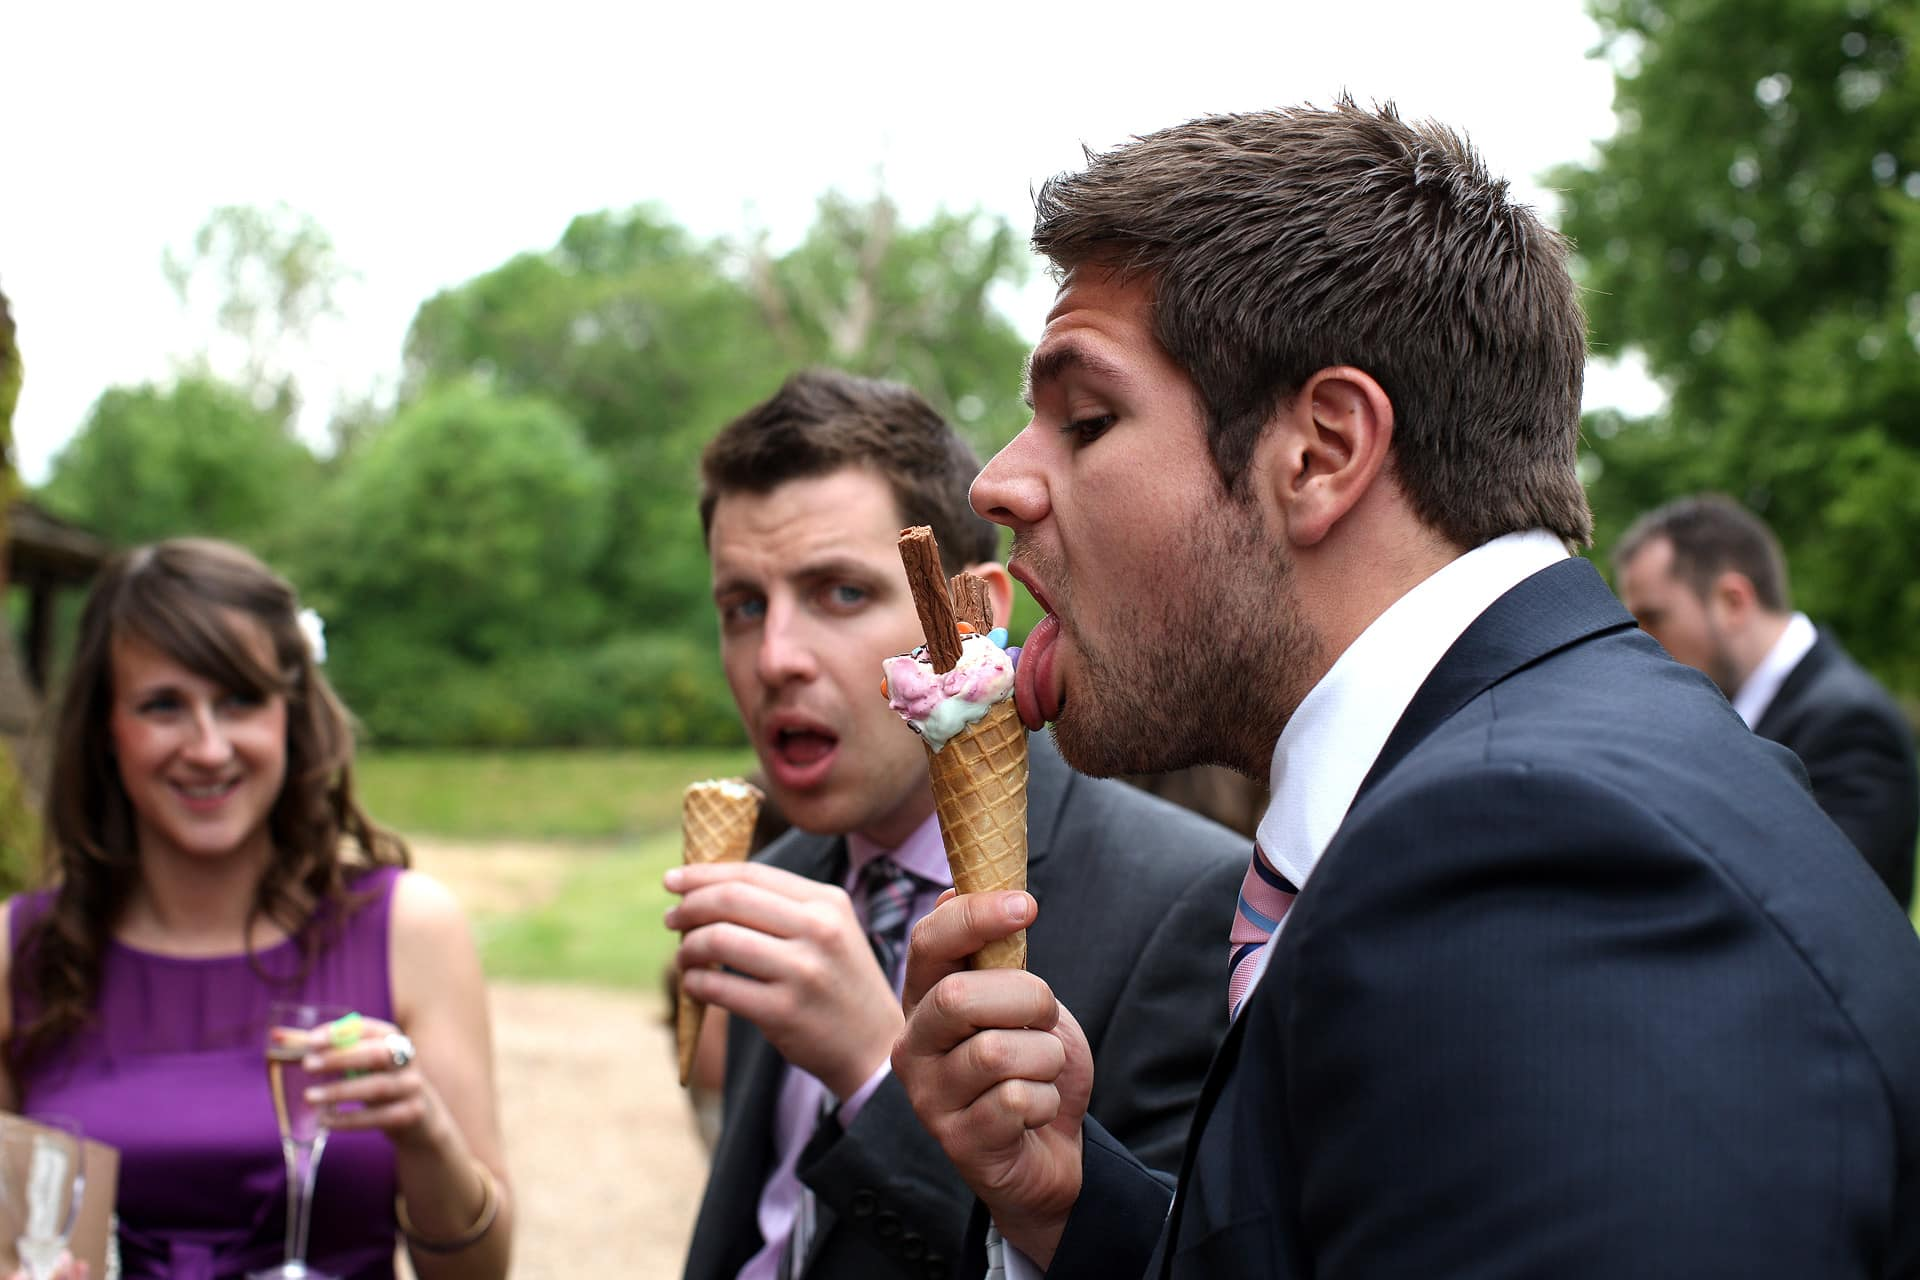 wedding-ice-cream-fun-silly-funny